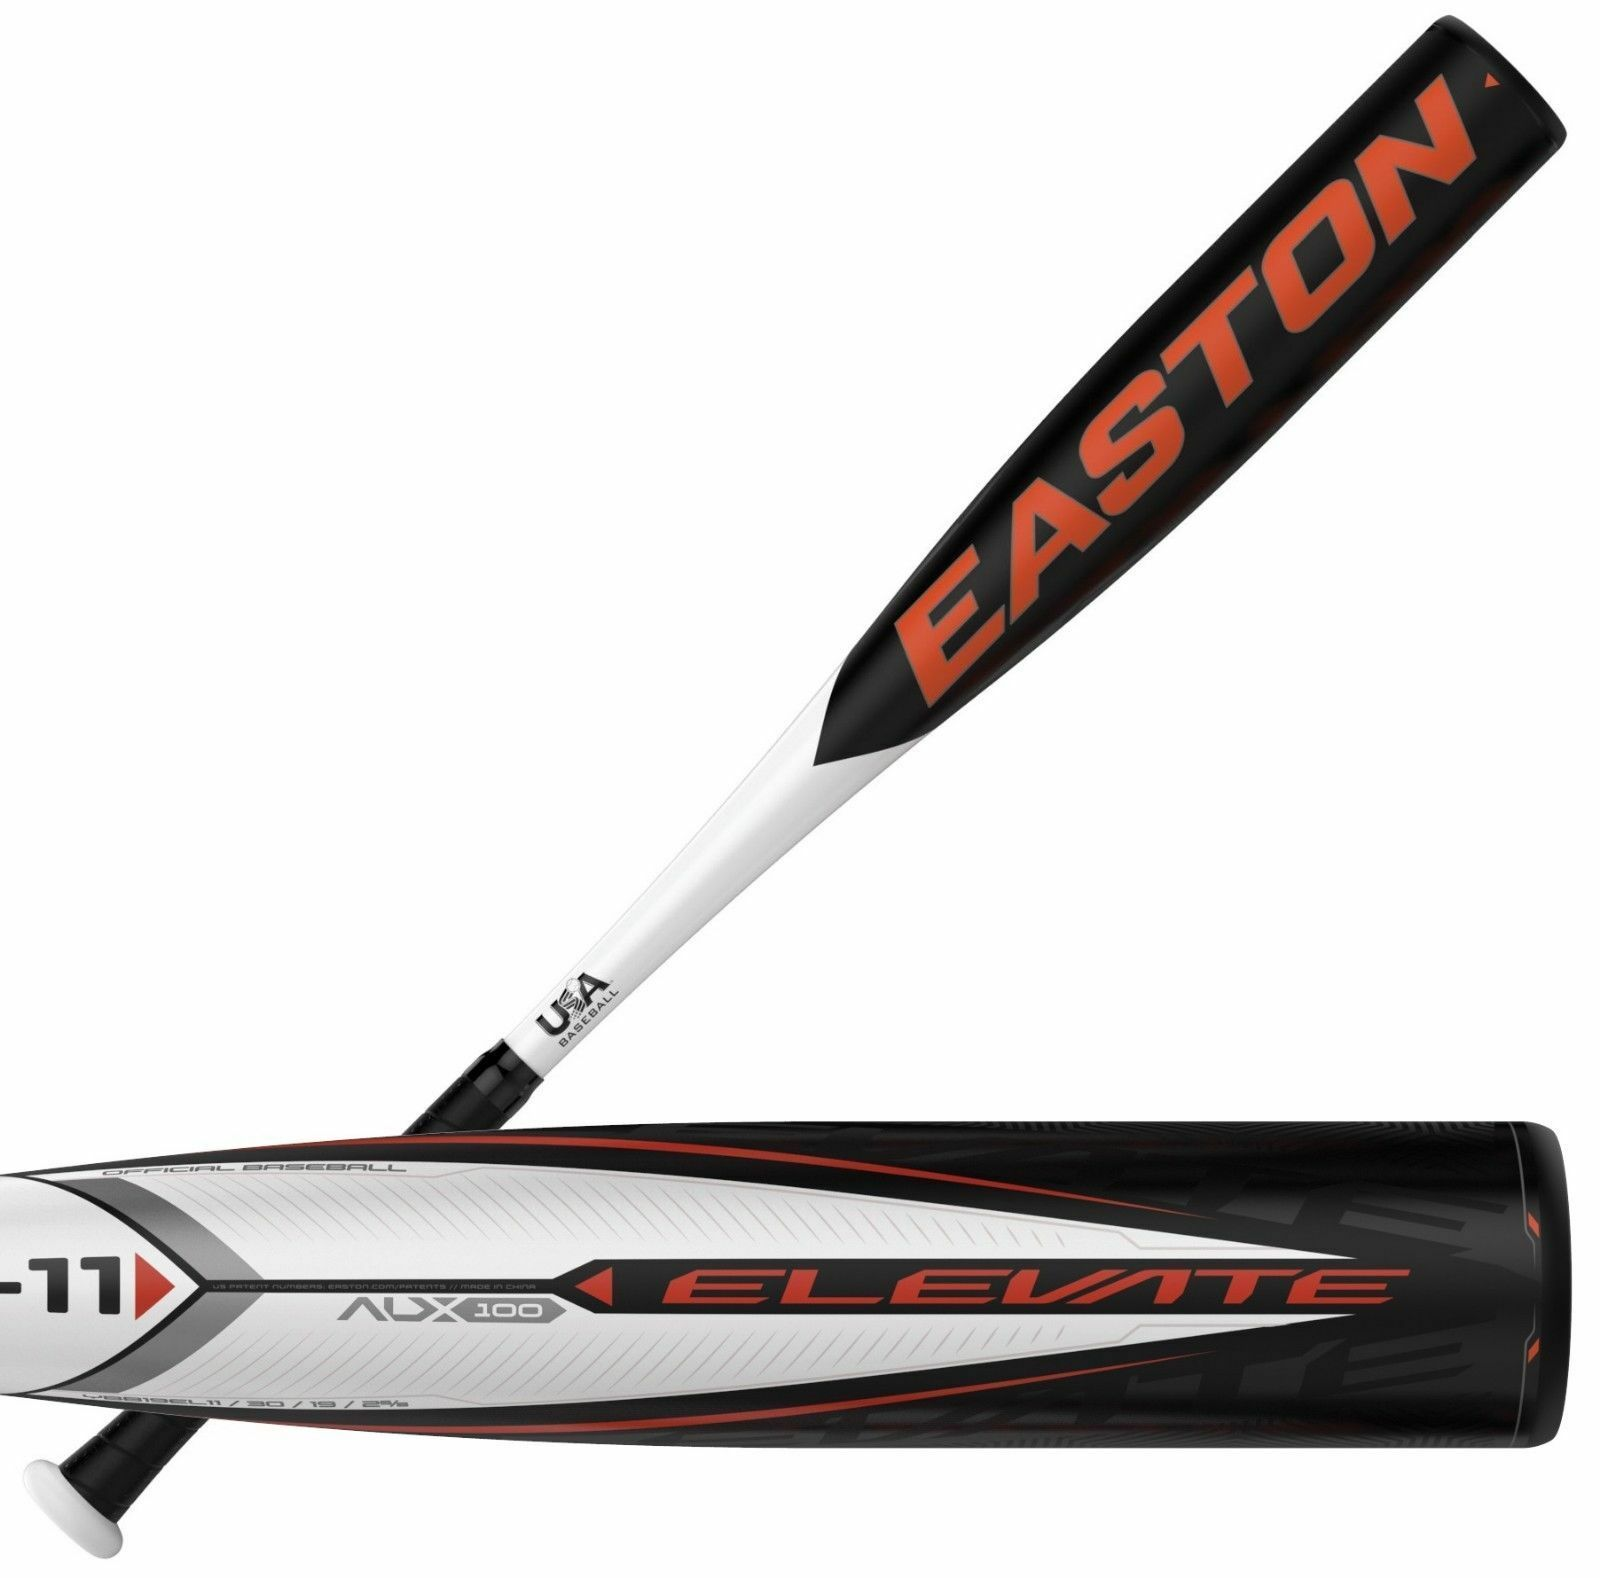 2019 Easton Elevate -11 30  19 OZ Juventud usa bate de béisbol YBB19EL11